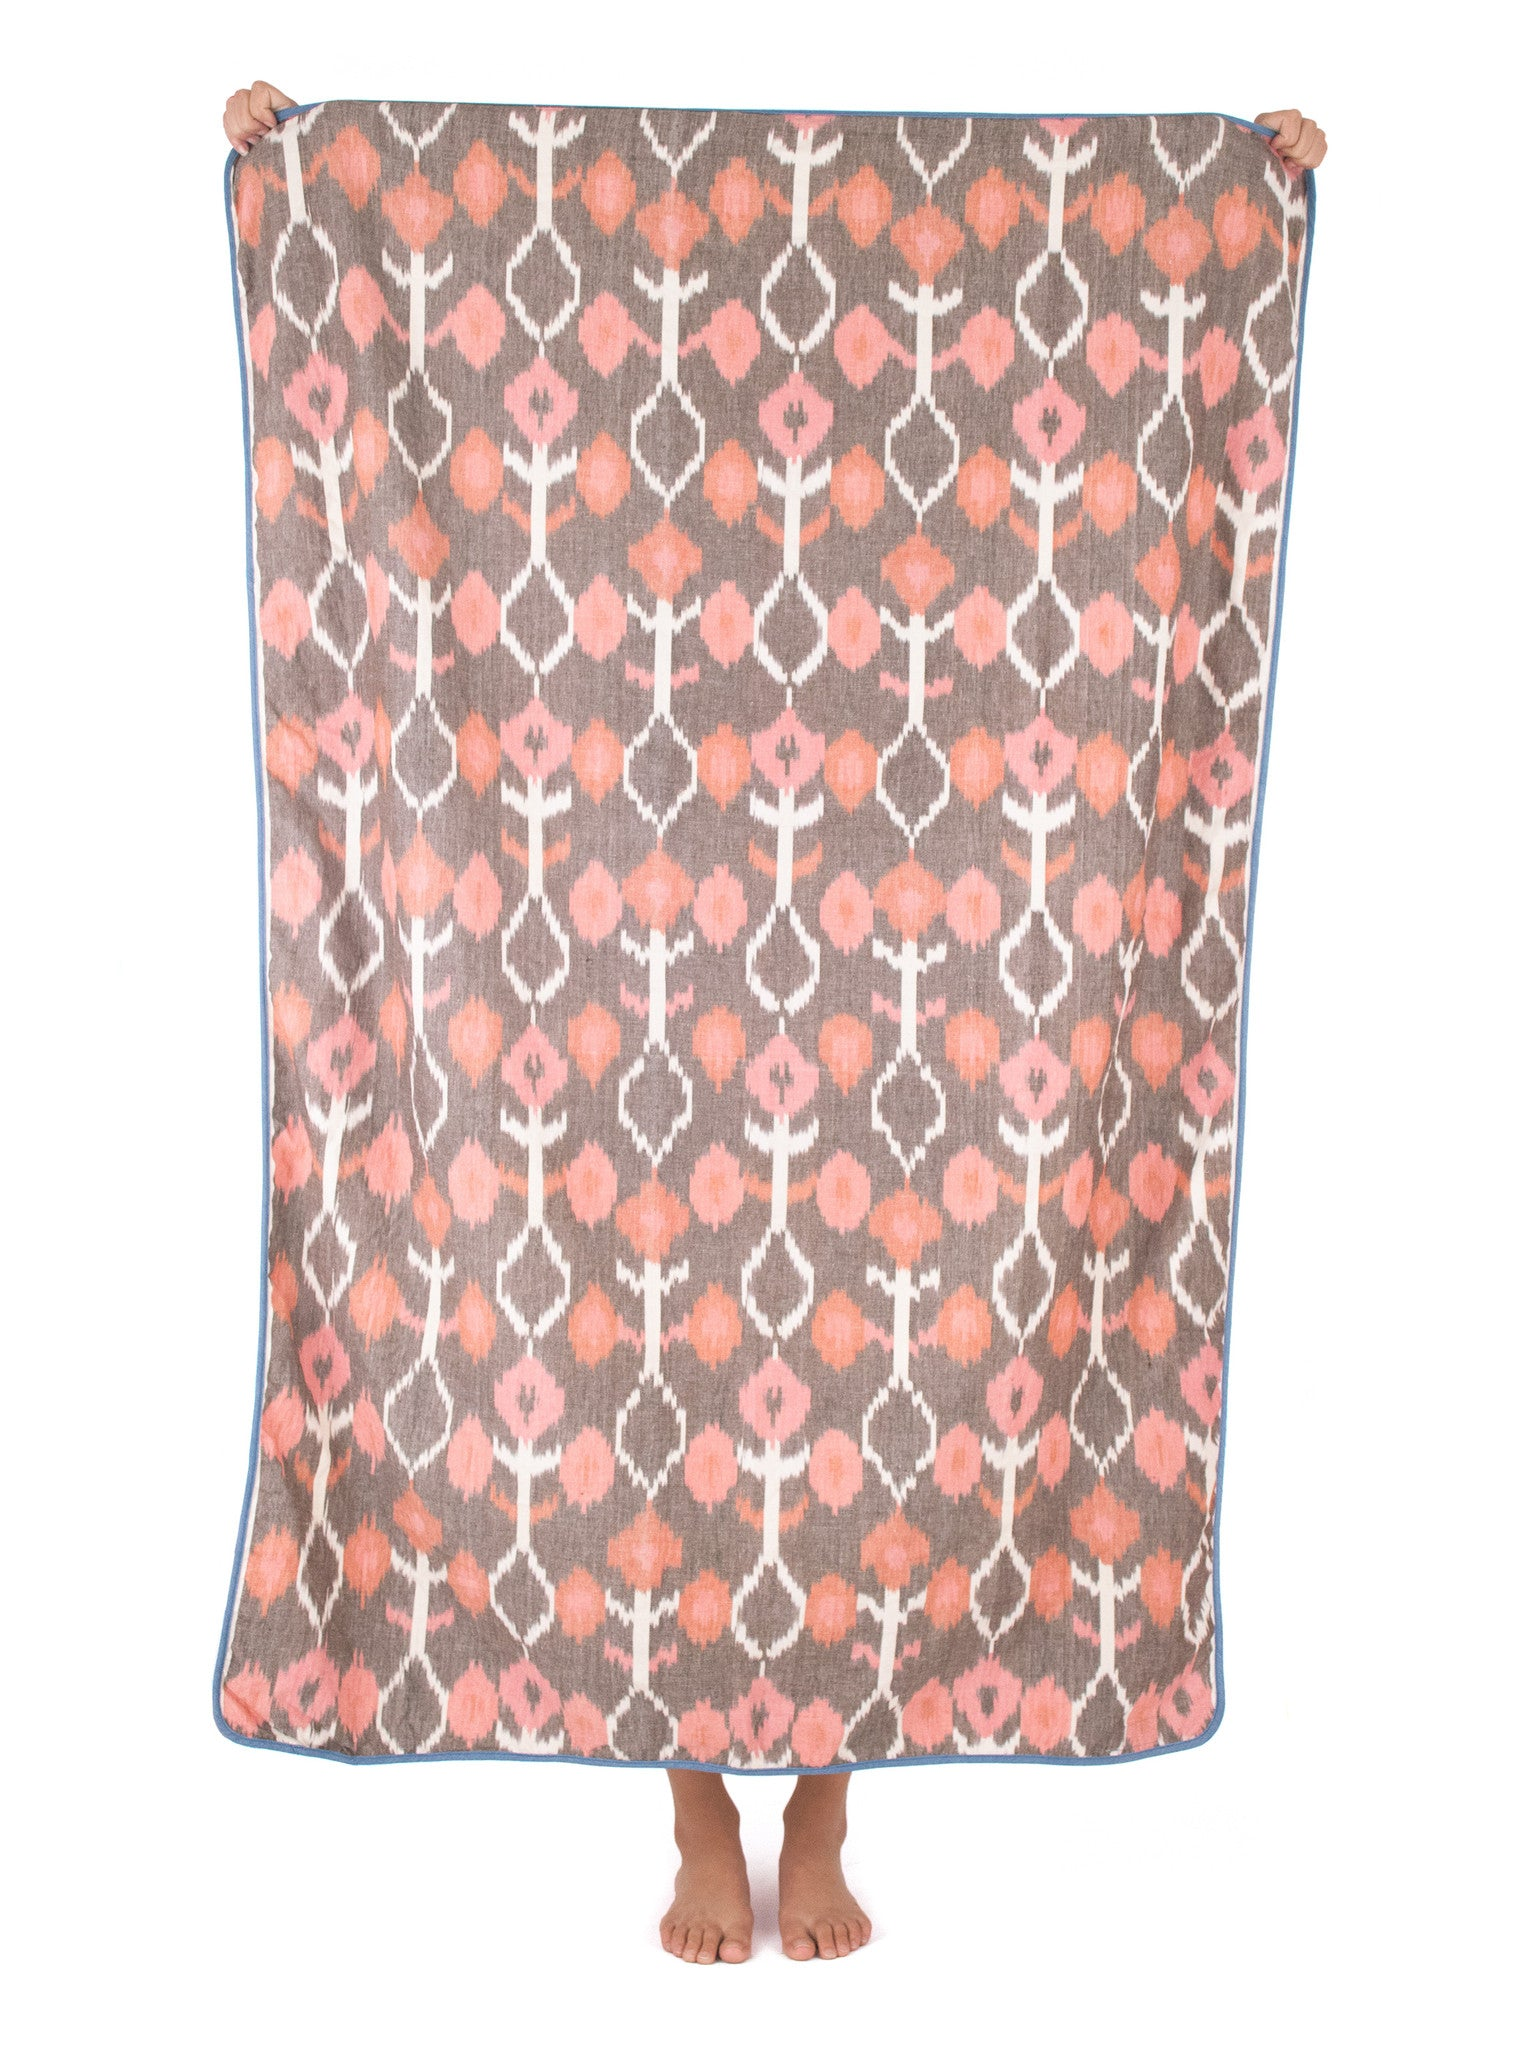 Ikat Beach Blanket